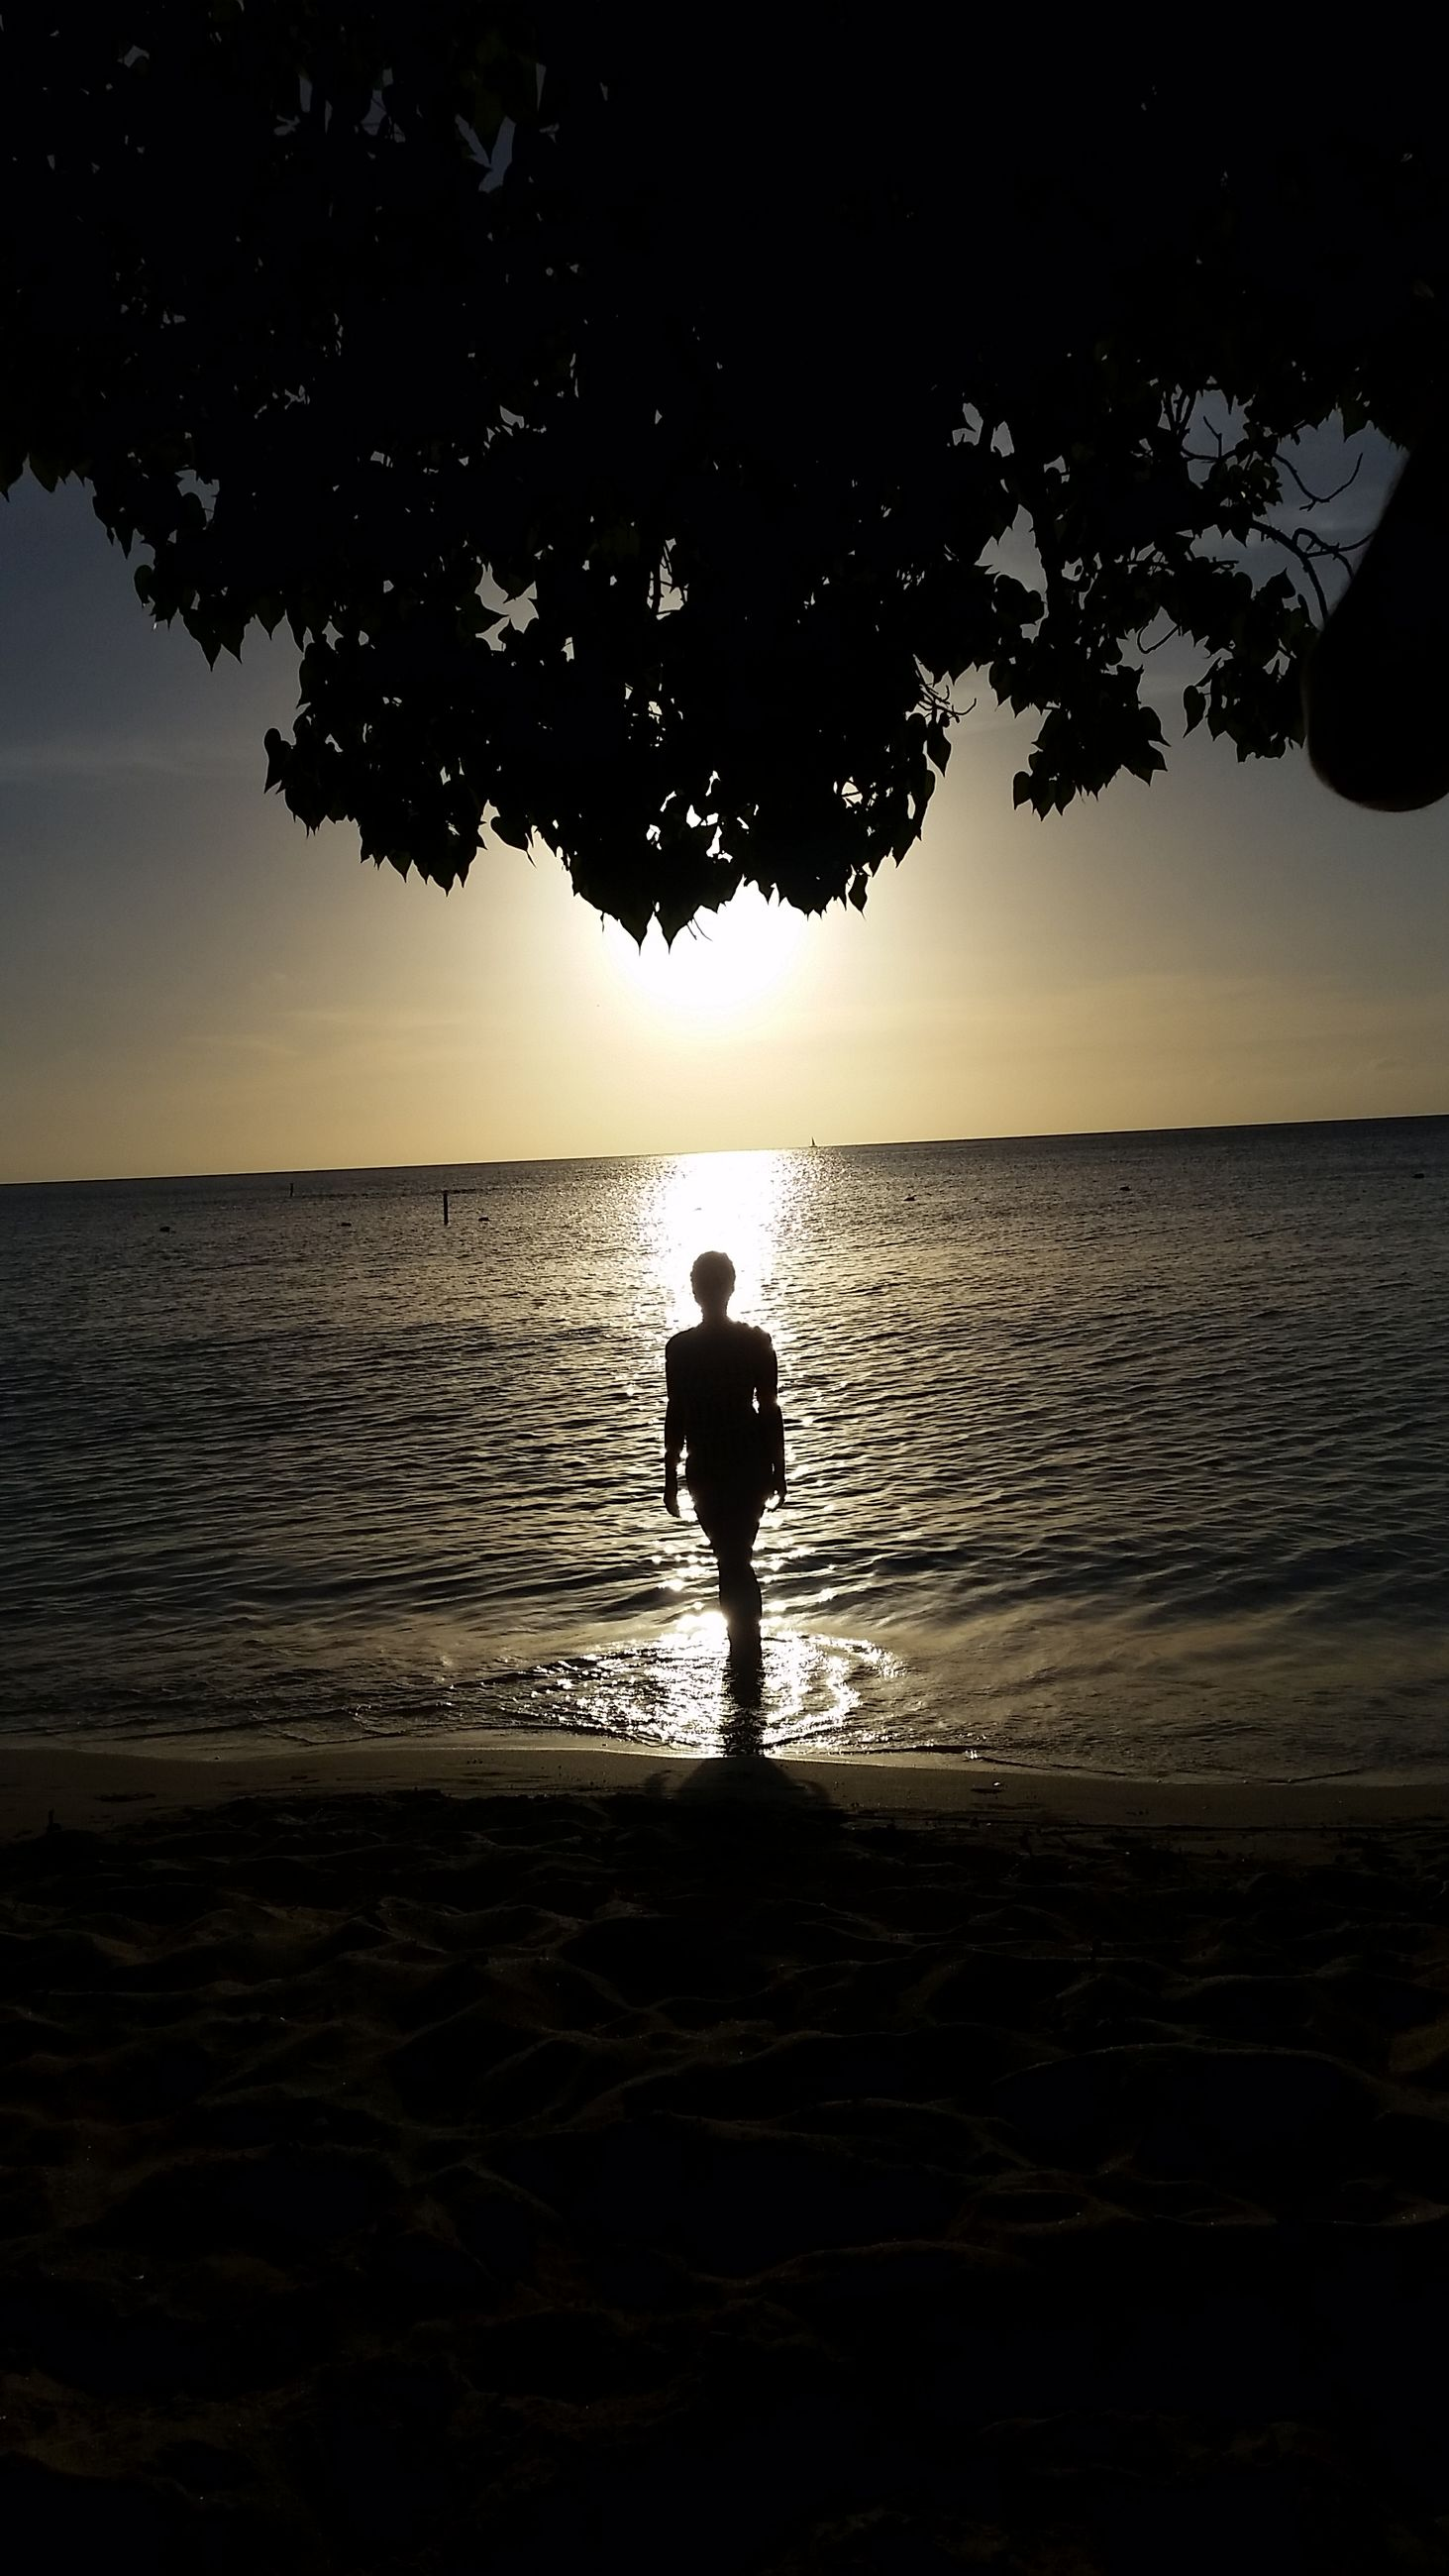 sky, water, silhouette, sunset, sea, beauty in nature, real people, scenics - nature, horizon, beach, one person, horizon over water, standing, tranquility, land, tranquil scene, nature, lifestyles, leisure activity, outdoors